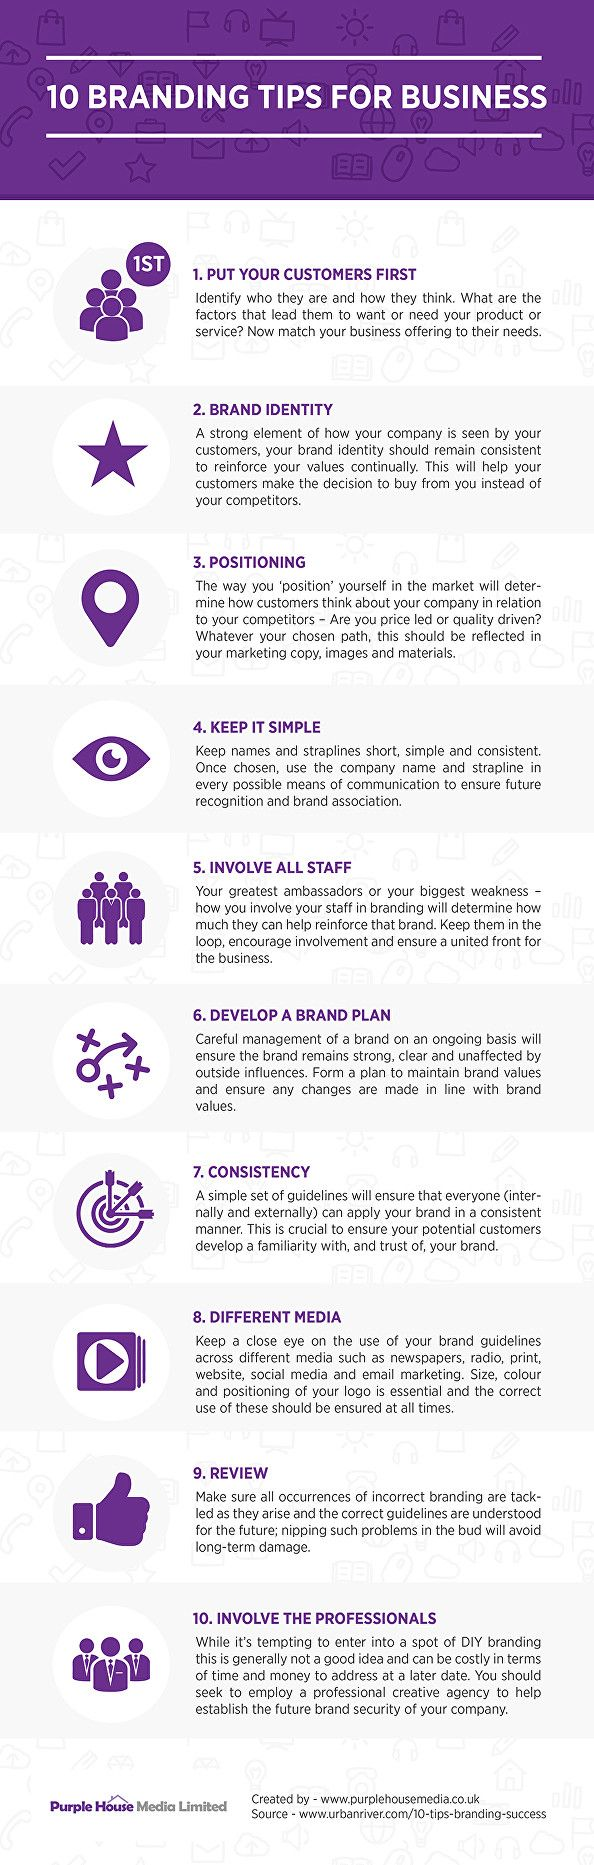 starting a new business 10 branding tips for success infographic starting a new business 10 branding tips for success redwebdesign